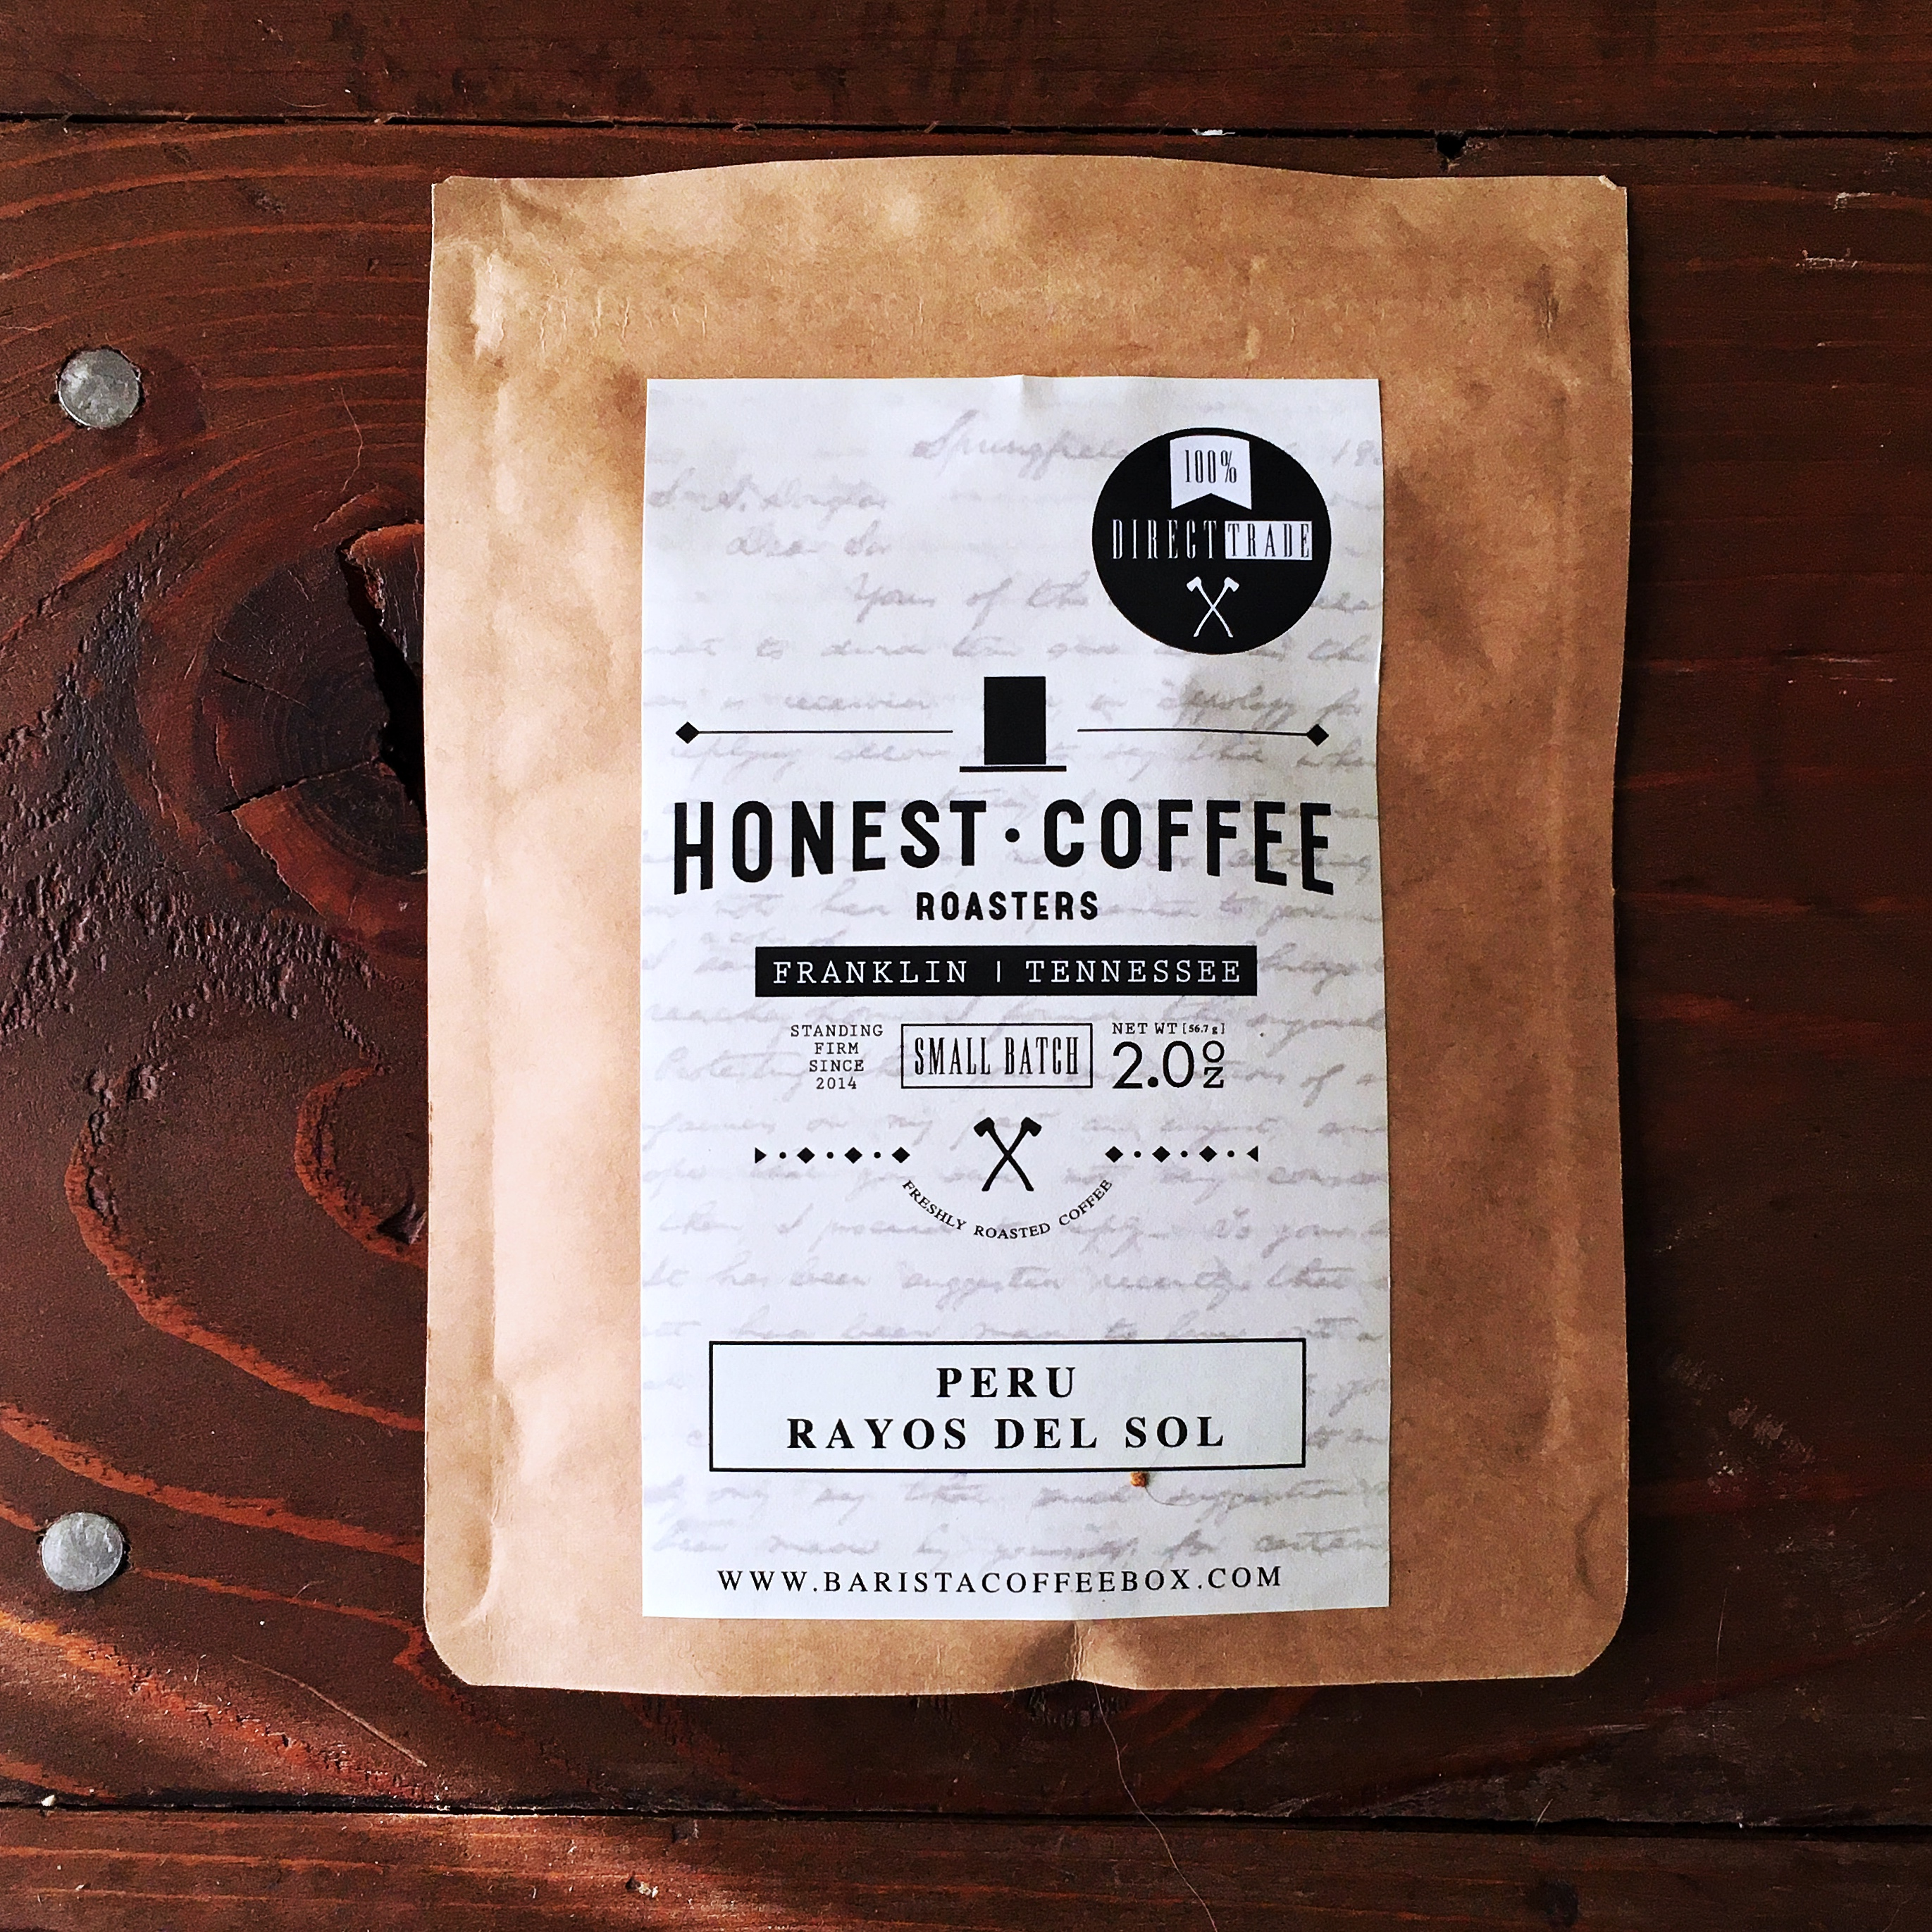 Barista Box x Honest Coffee Roasters Peru Rayos del Sol